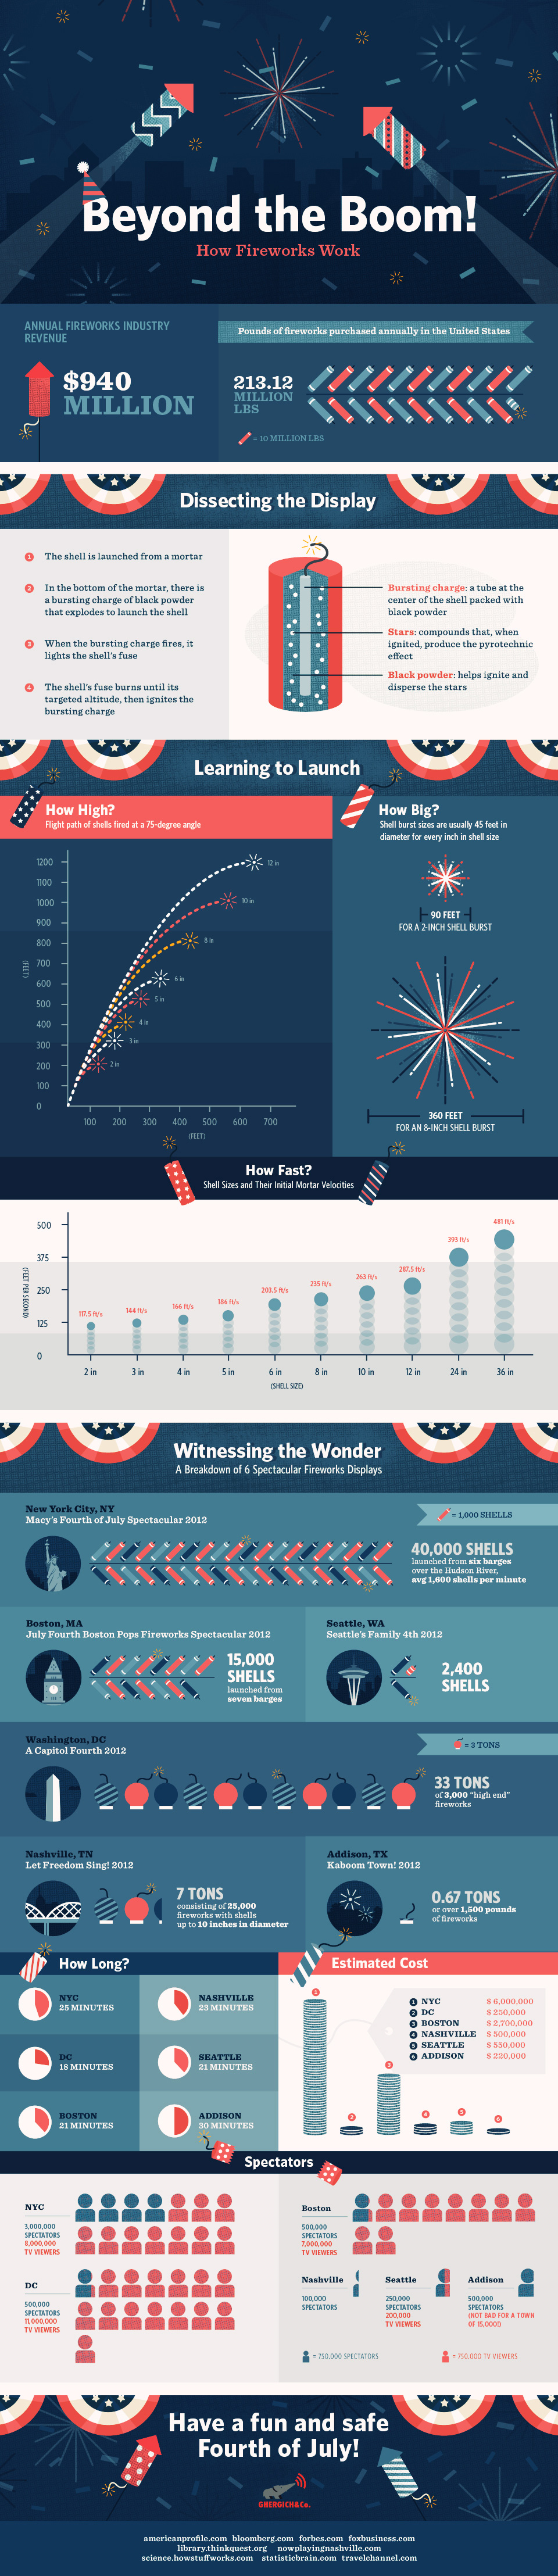 Beyond the BOOM: How Fireworks Work